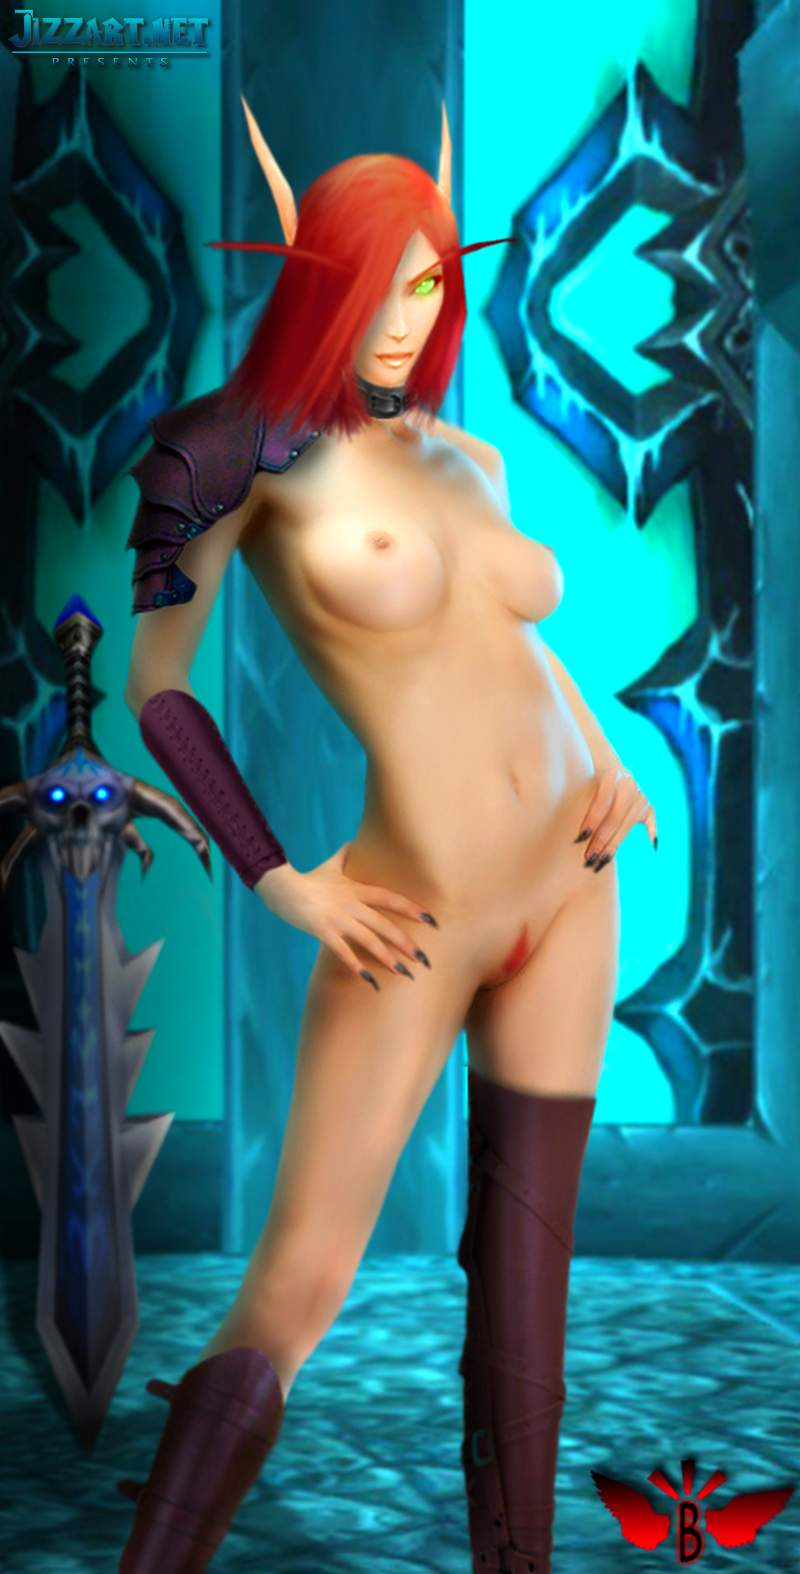 Elf cosplay porn videos 3gp download softcore clip